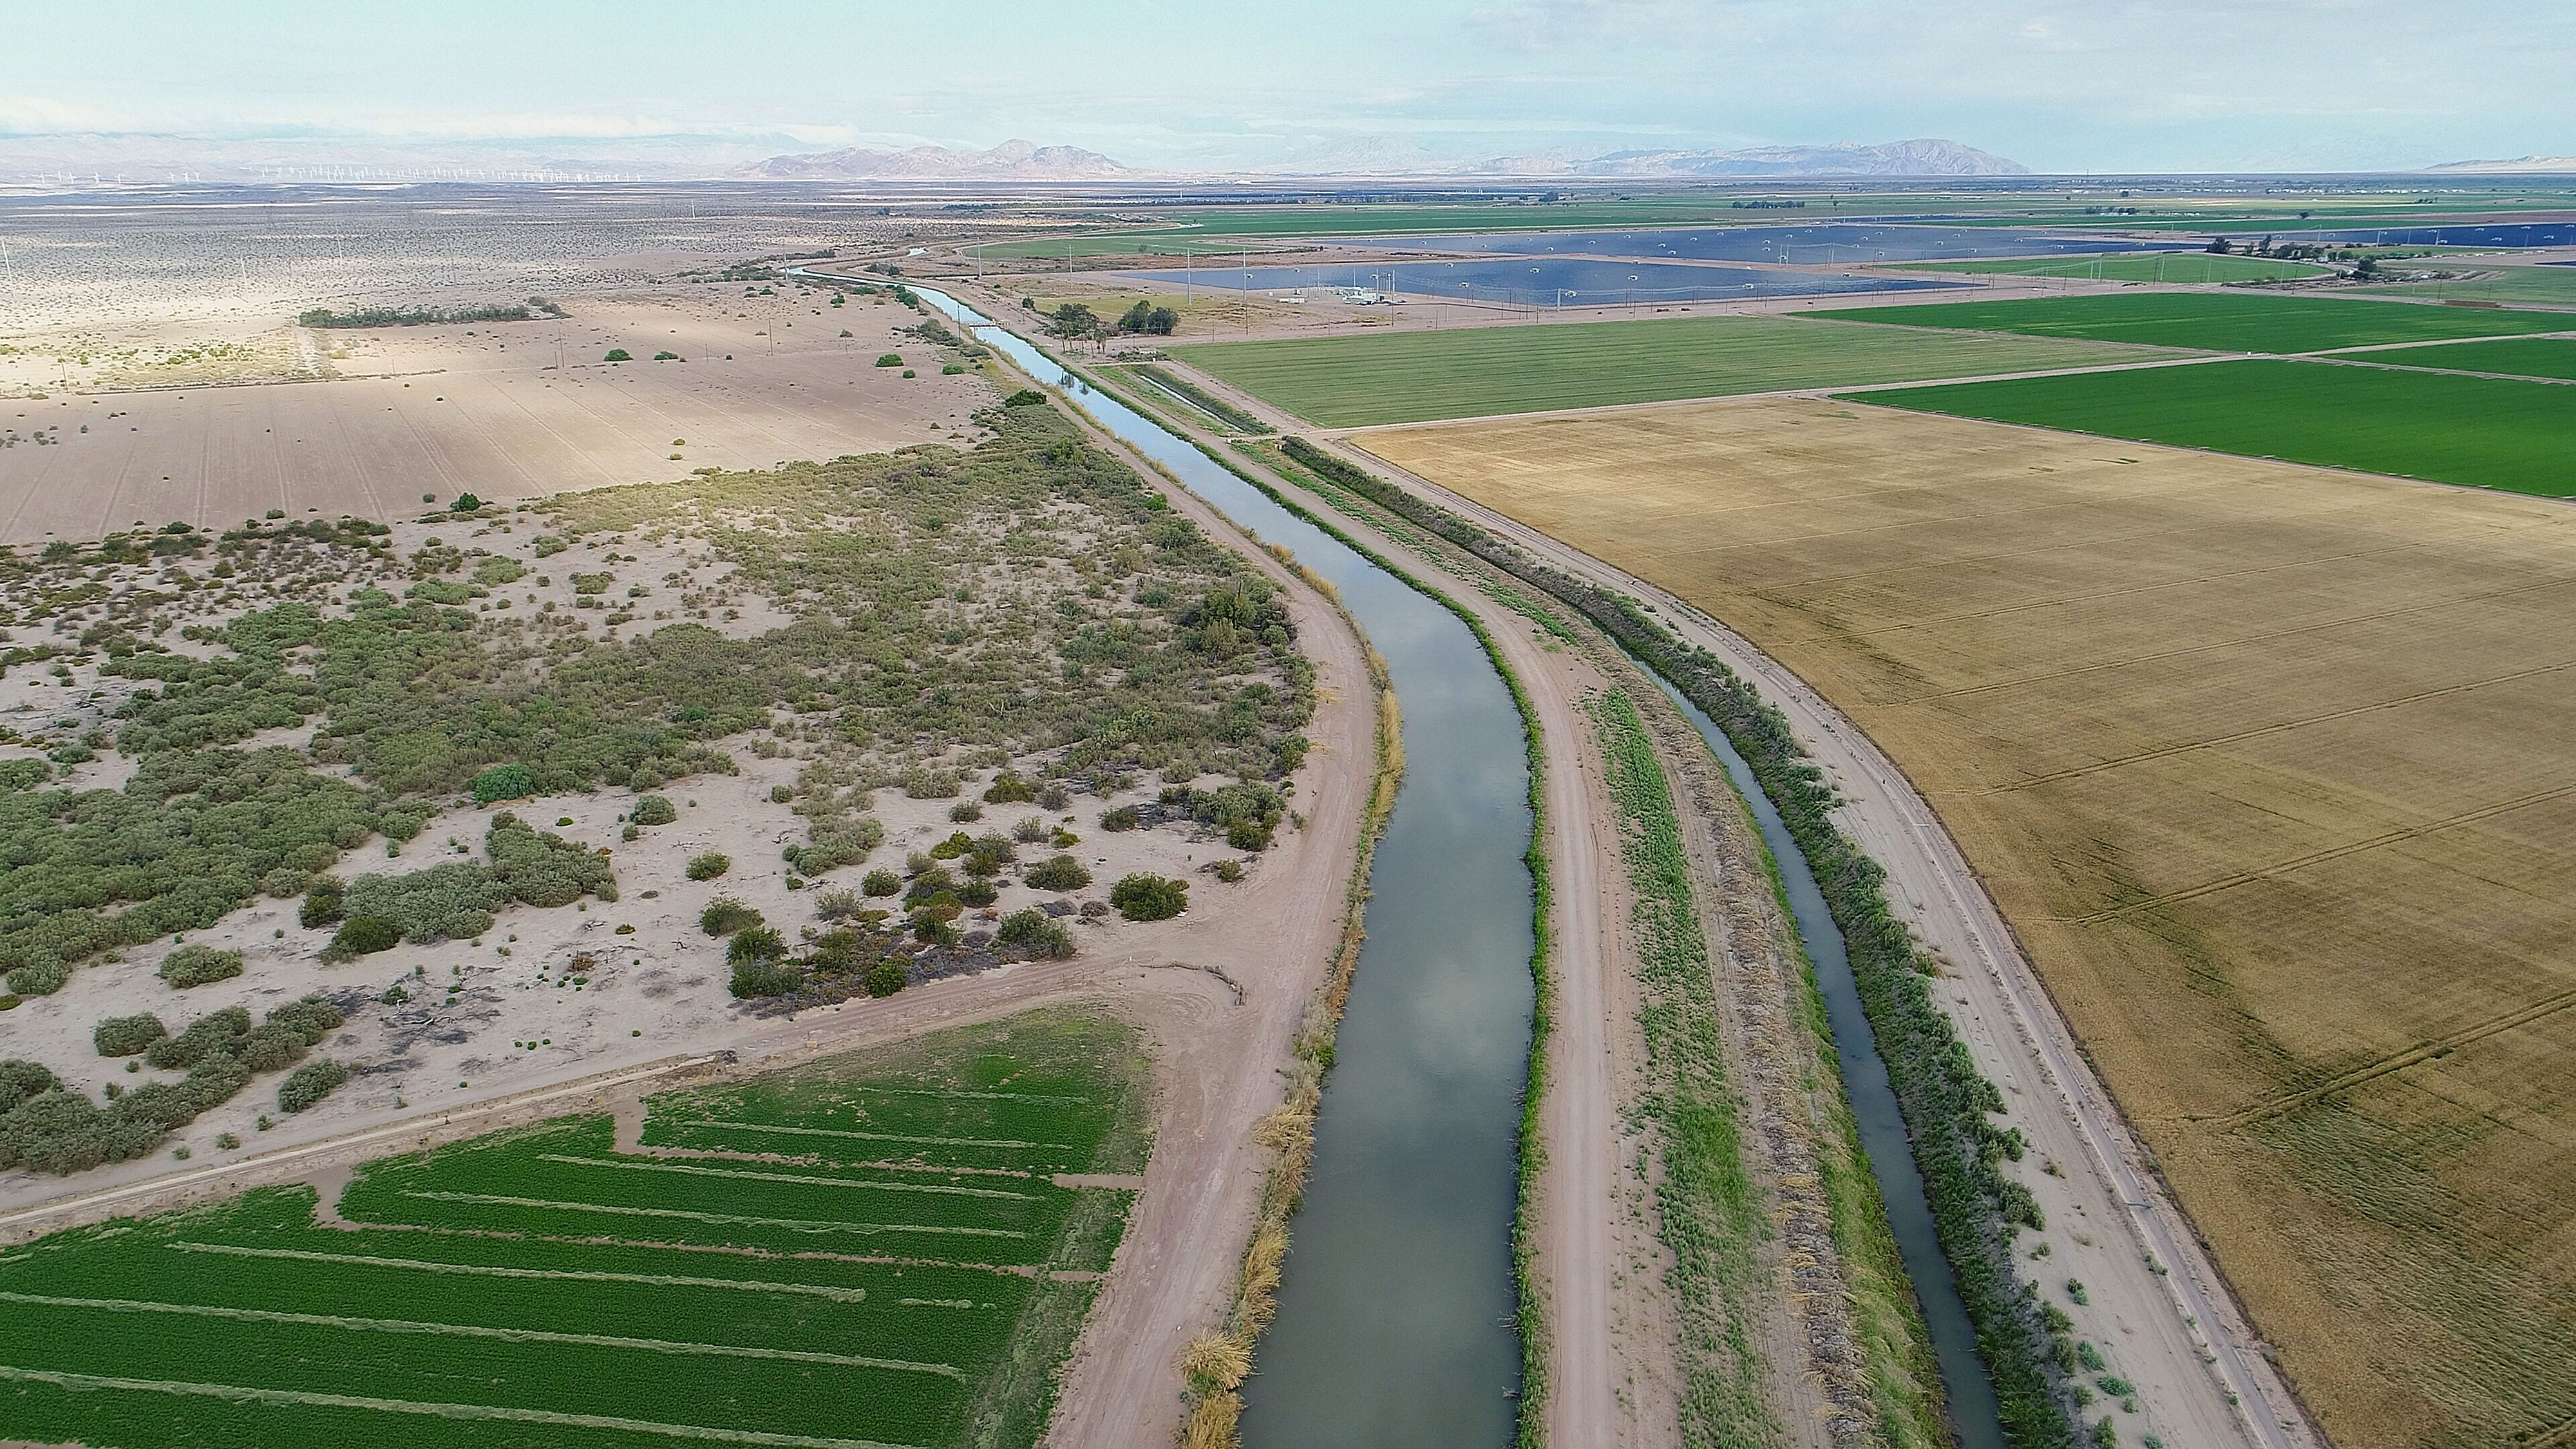 The Westside Main Canal flows past farmland owned by Mike Abatti, as seen from a drone. The Campo Verde solar project can be seen in the background.